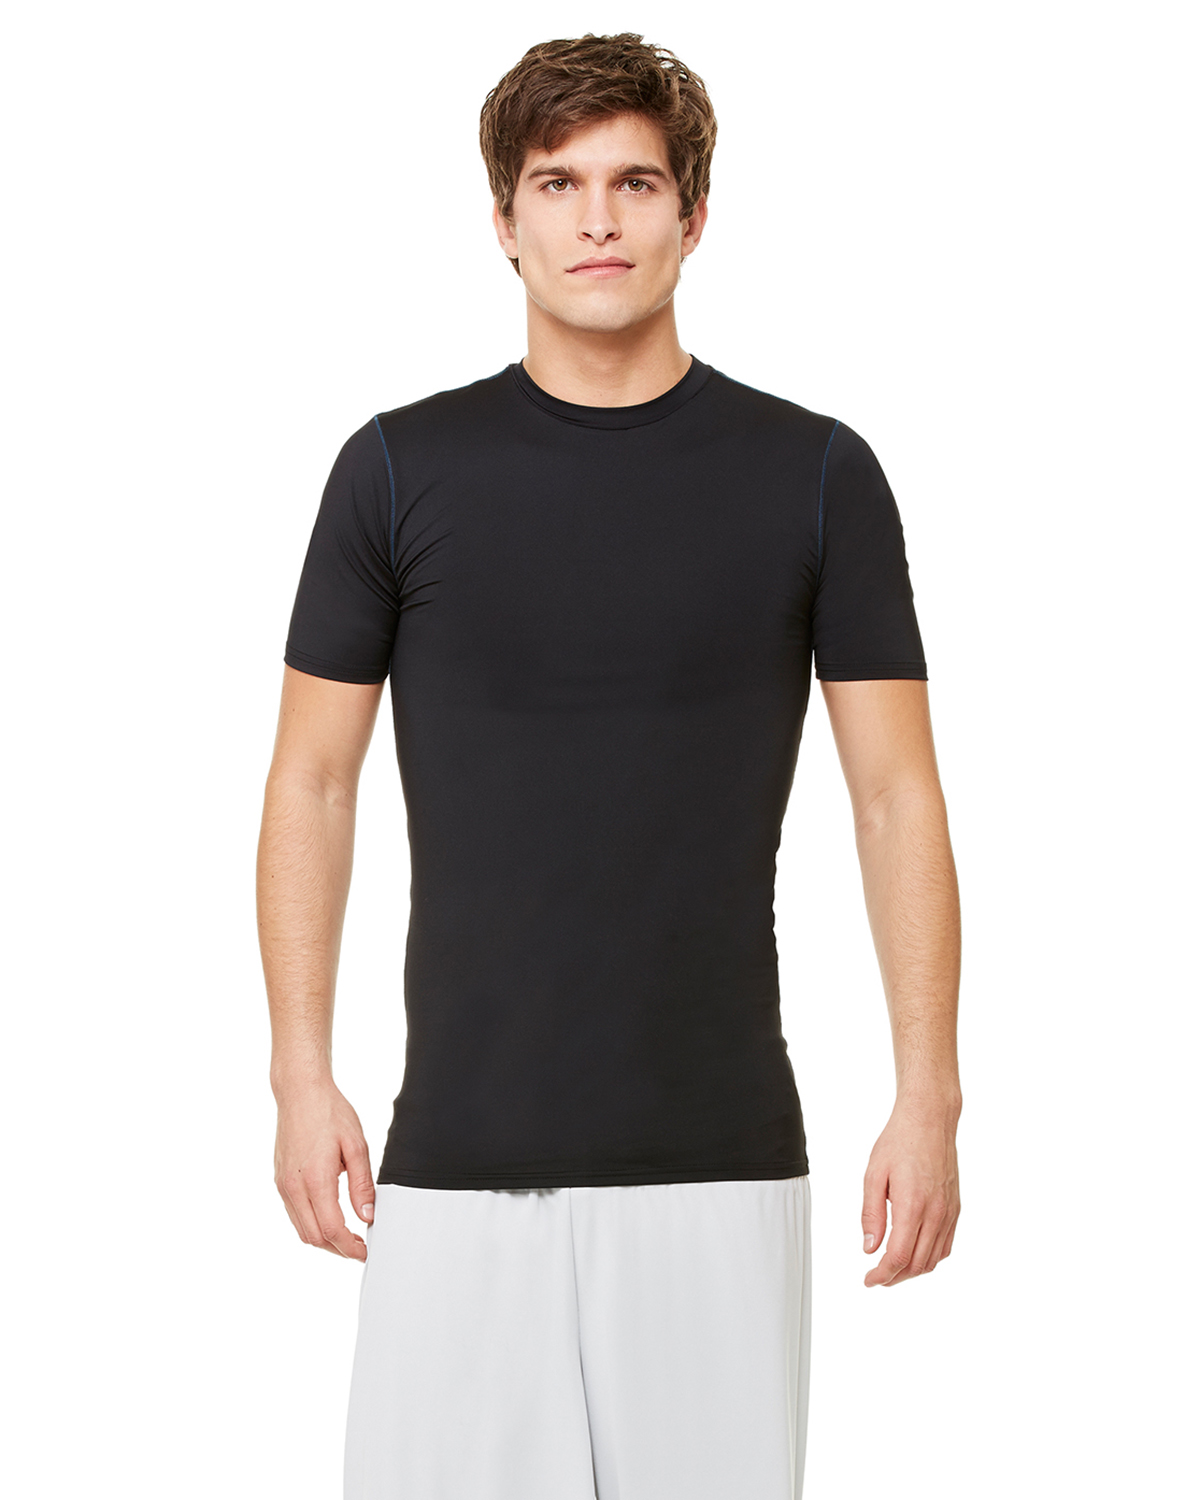 alo M1007 Short Sleeve Compression T-Shirt